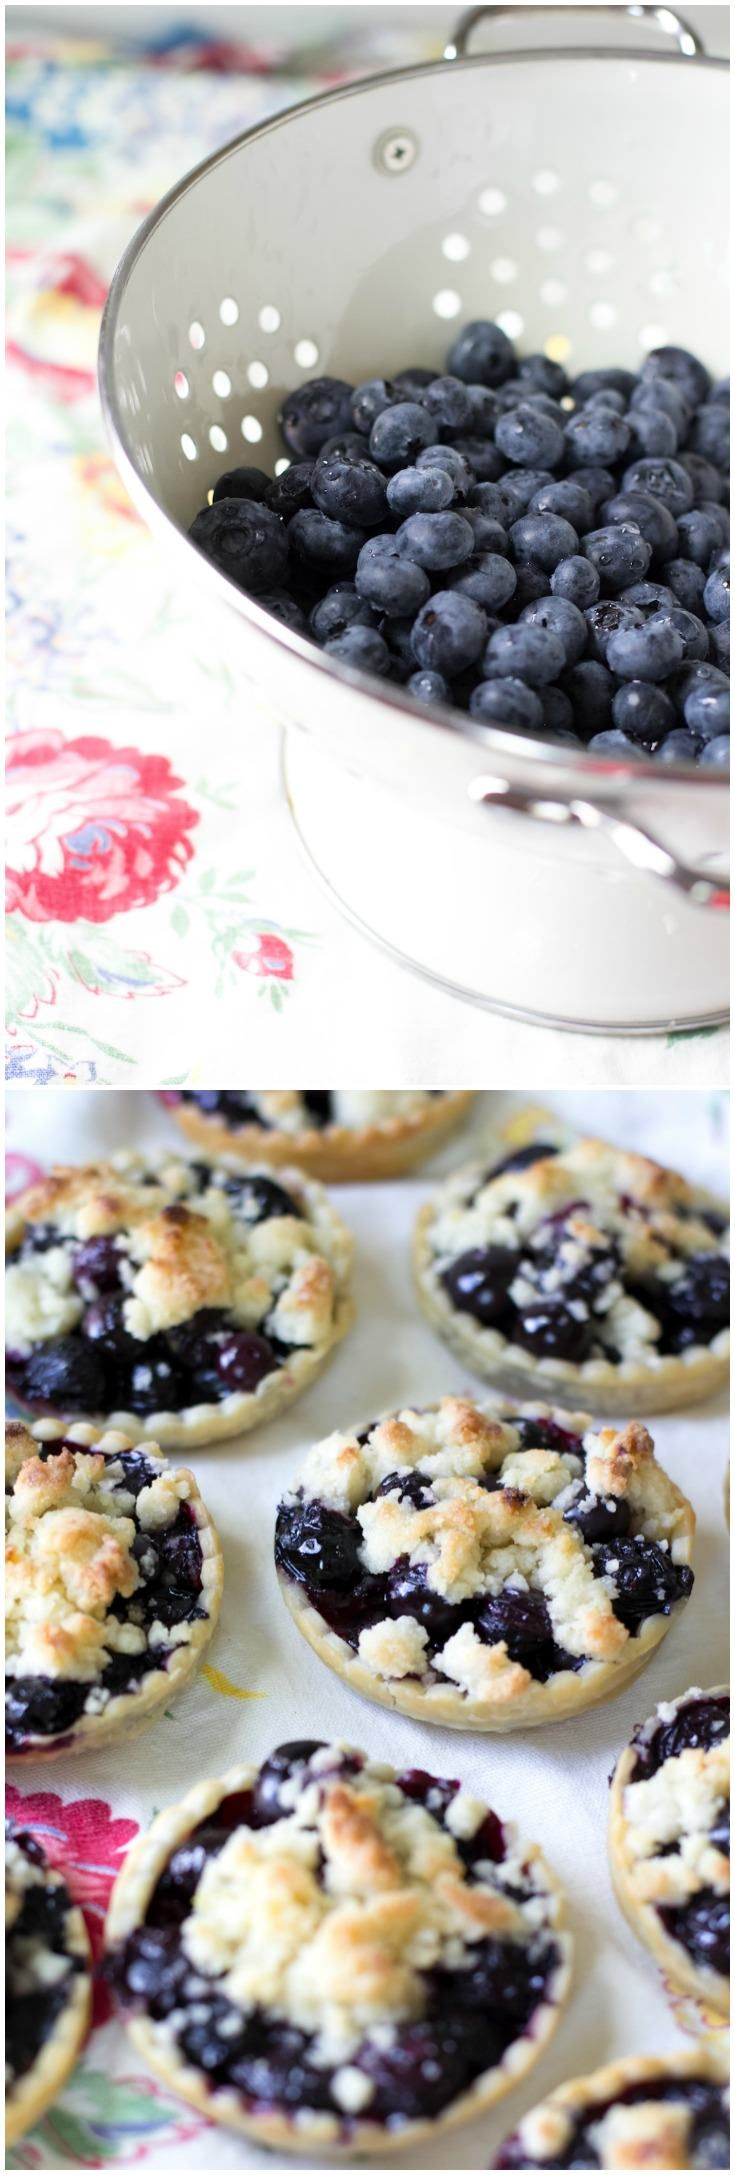 This lemon blueberry crisp recipe is perfect for summer! Make these individual pies in mason jar lids. These are so cute and are great for parties! via @diy_candy